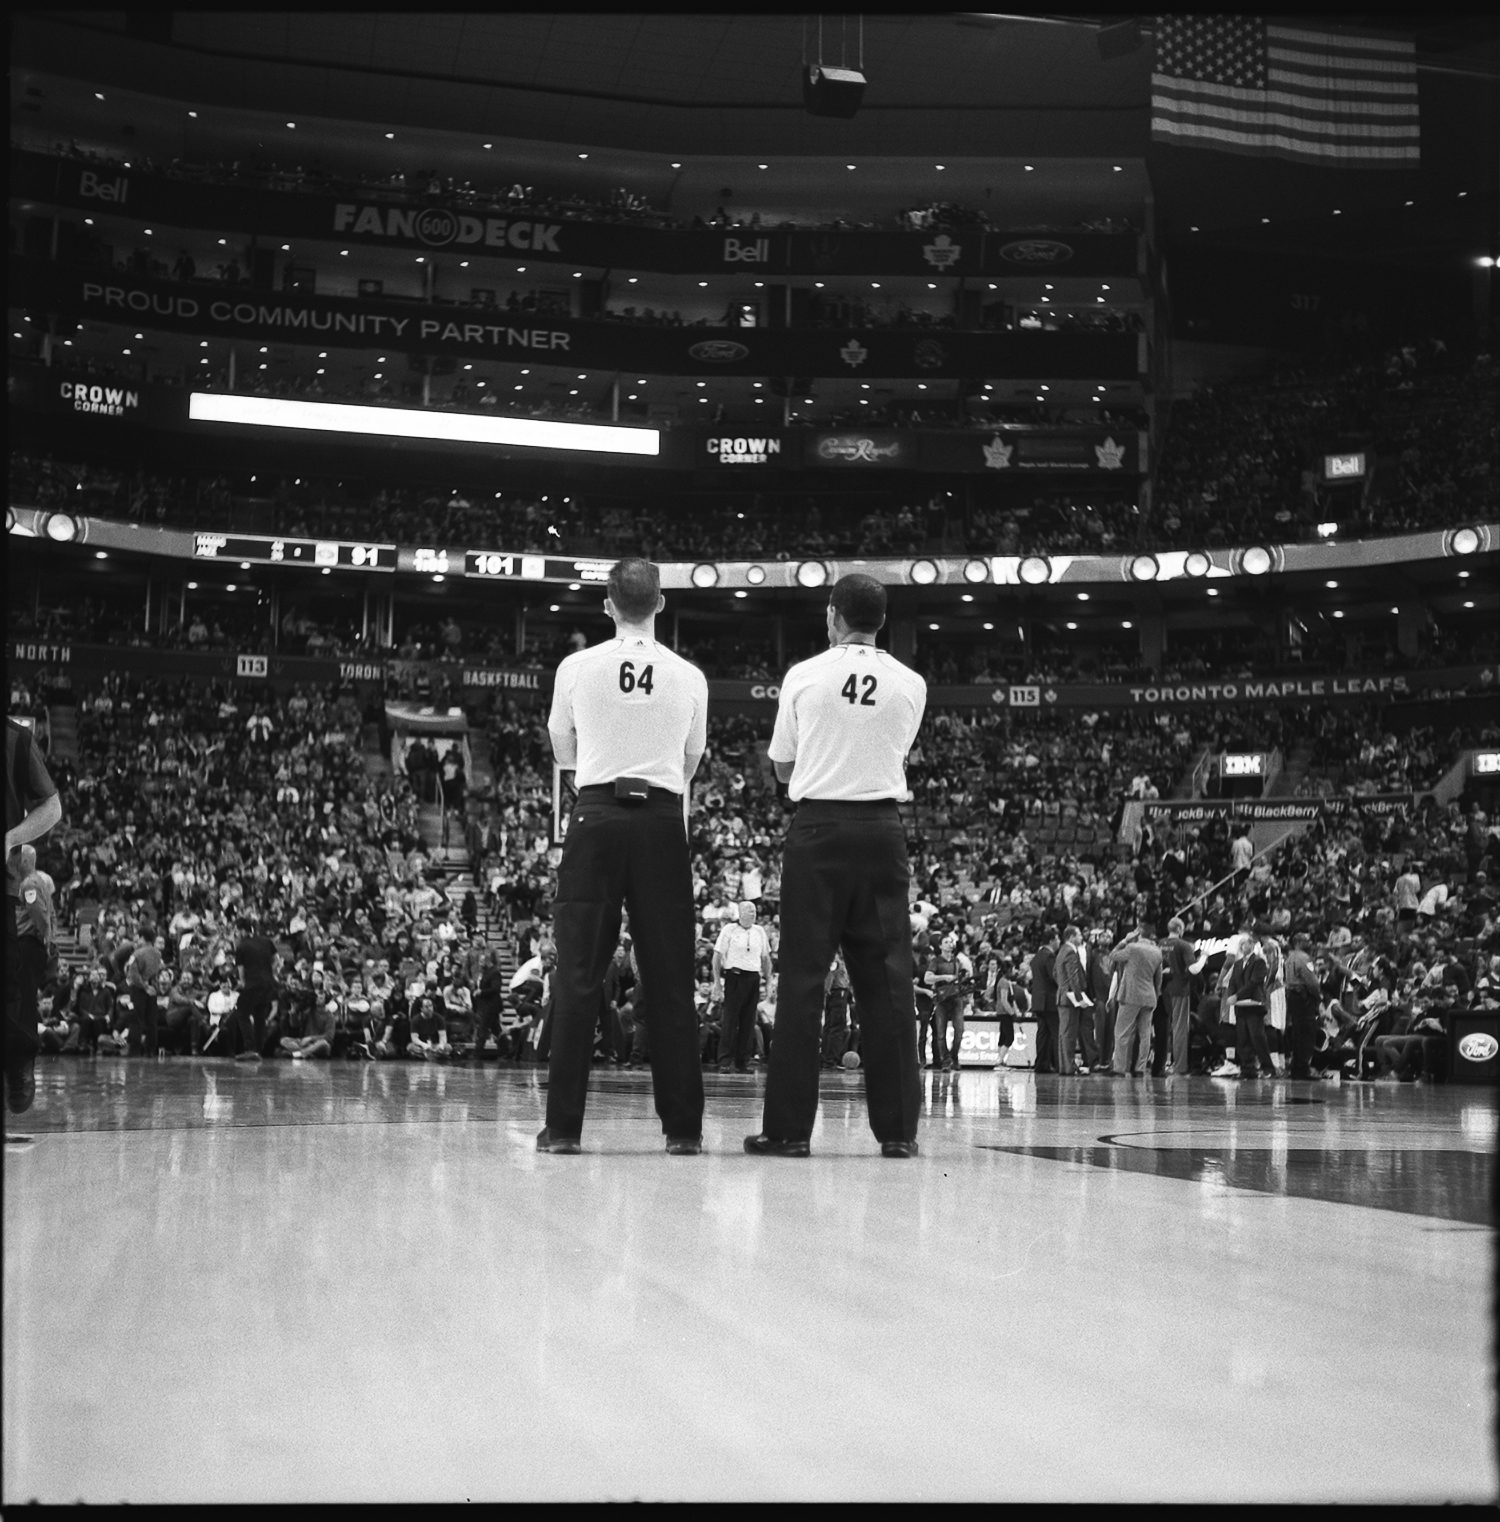 65-NBA-Referees-Toronto-Raptos-VS-Cleveland-Caveliers-Lebron-James-Vintage-Film-Courtside-Ilford-HP5+.JPG